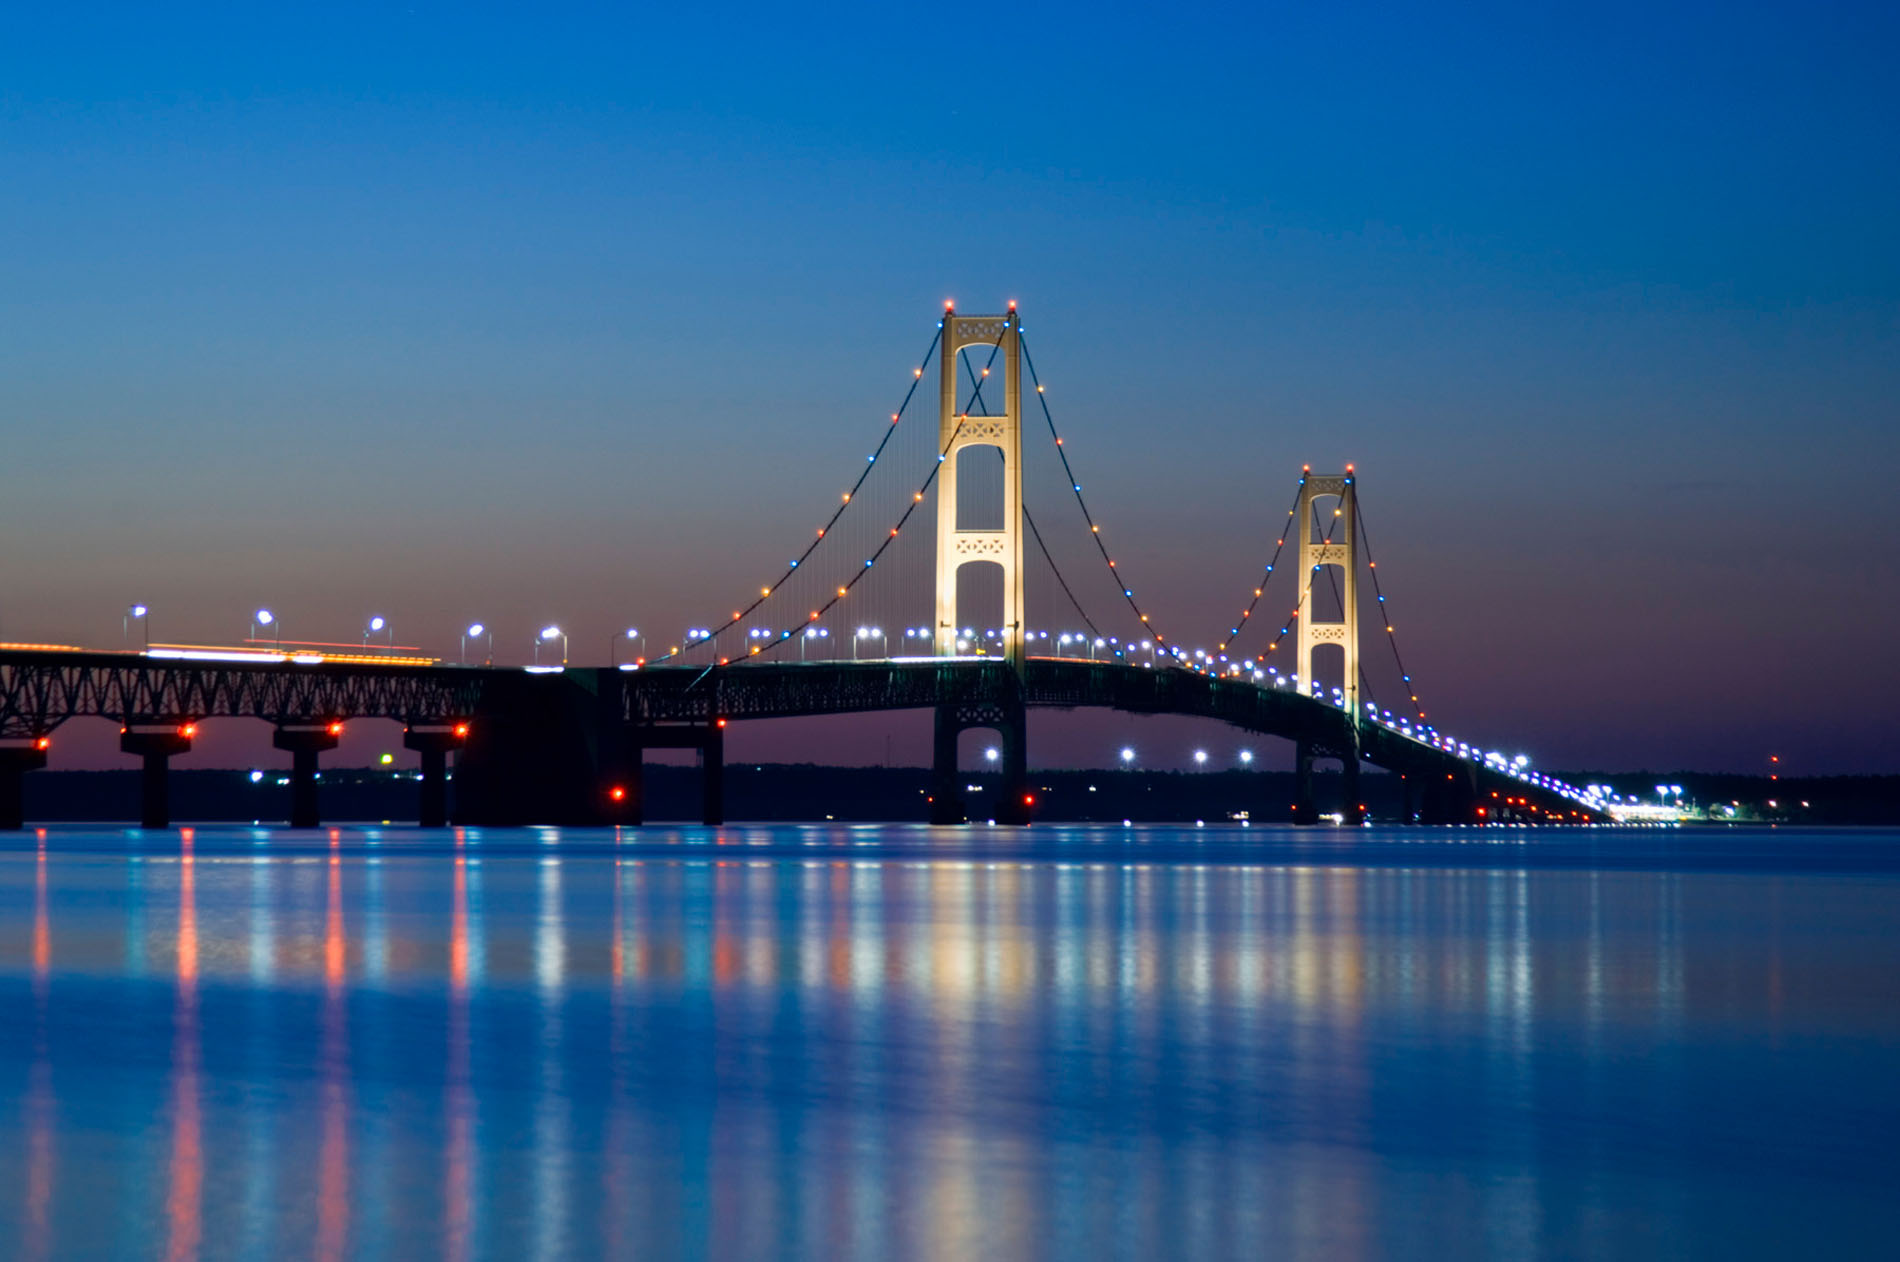 Mackinac Bridge at night June 2006